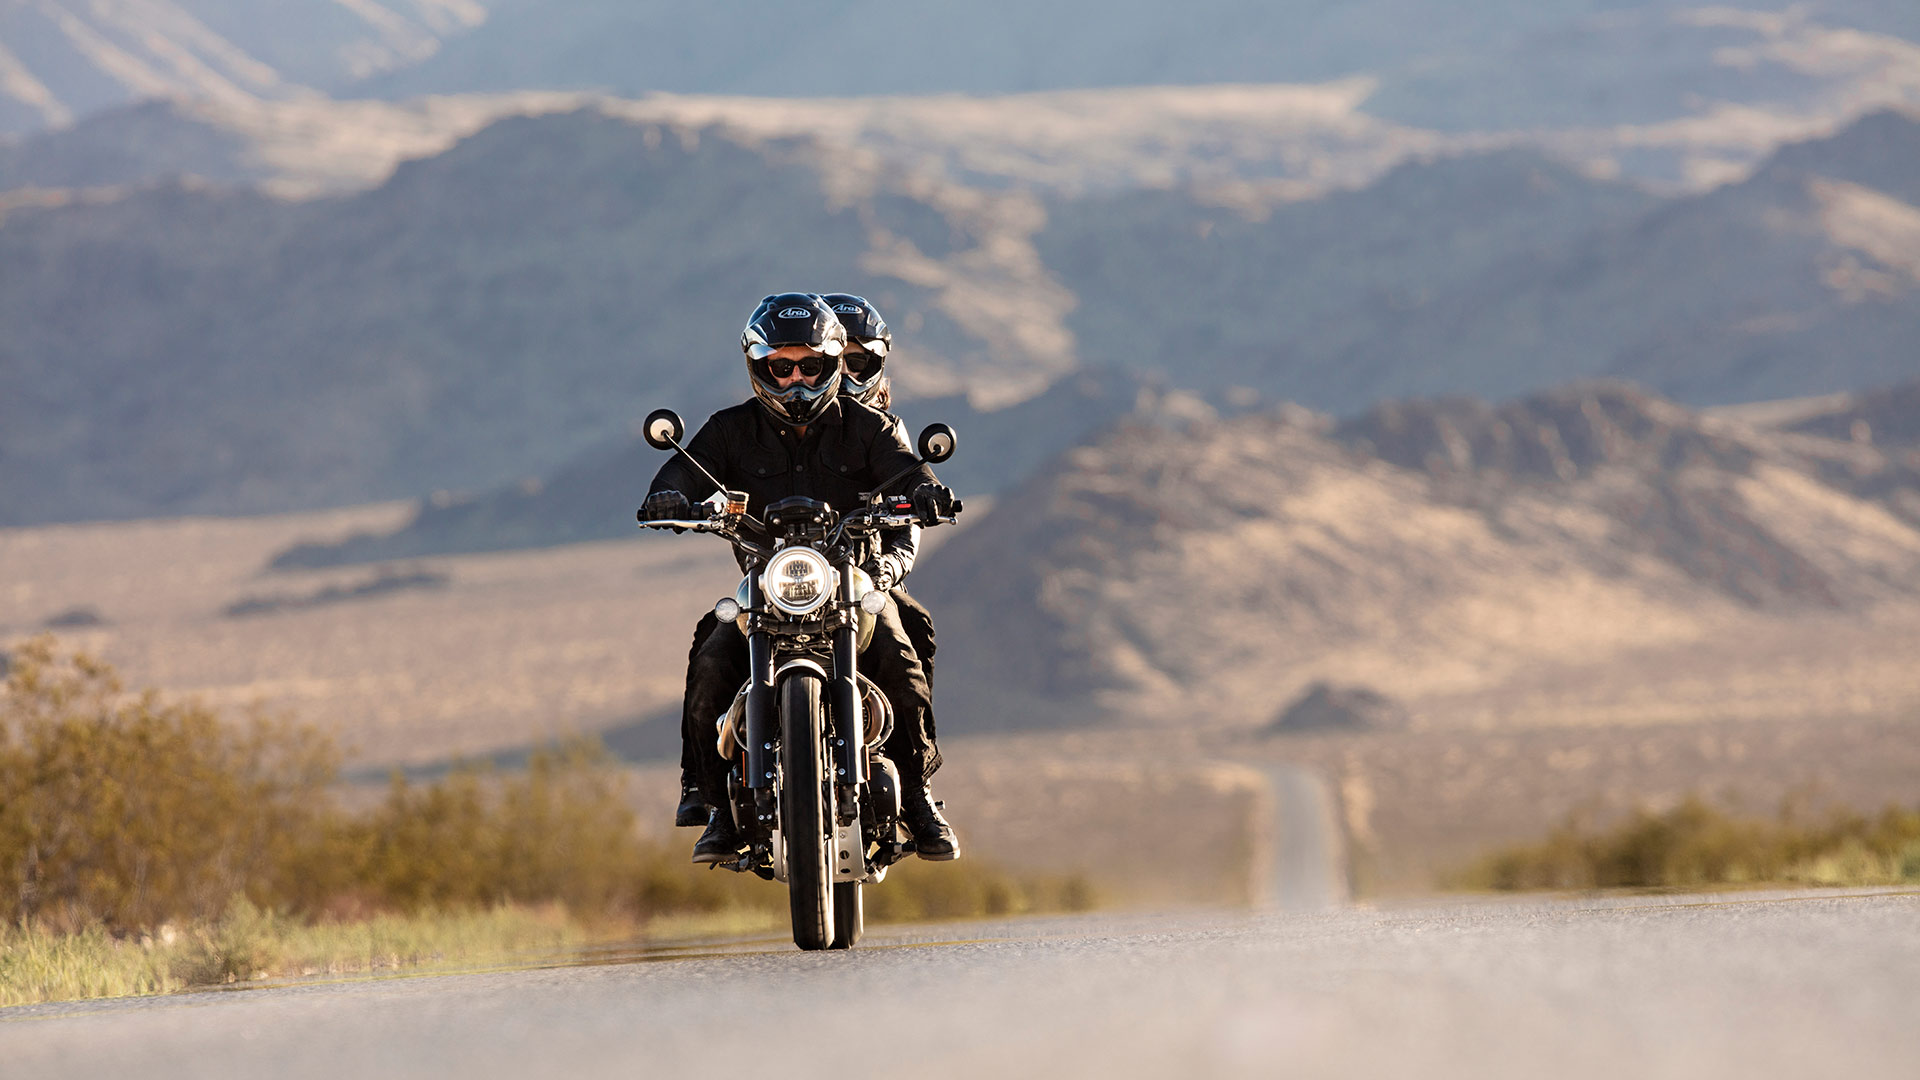 A rider on the Triumph Scrambler 1200 riding along a scenic route